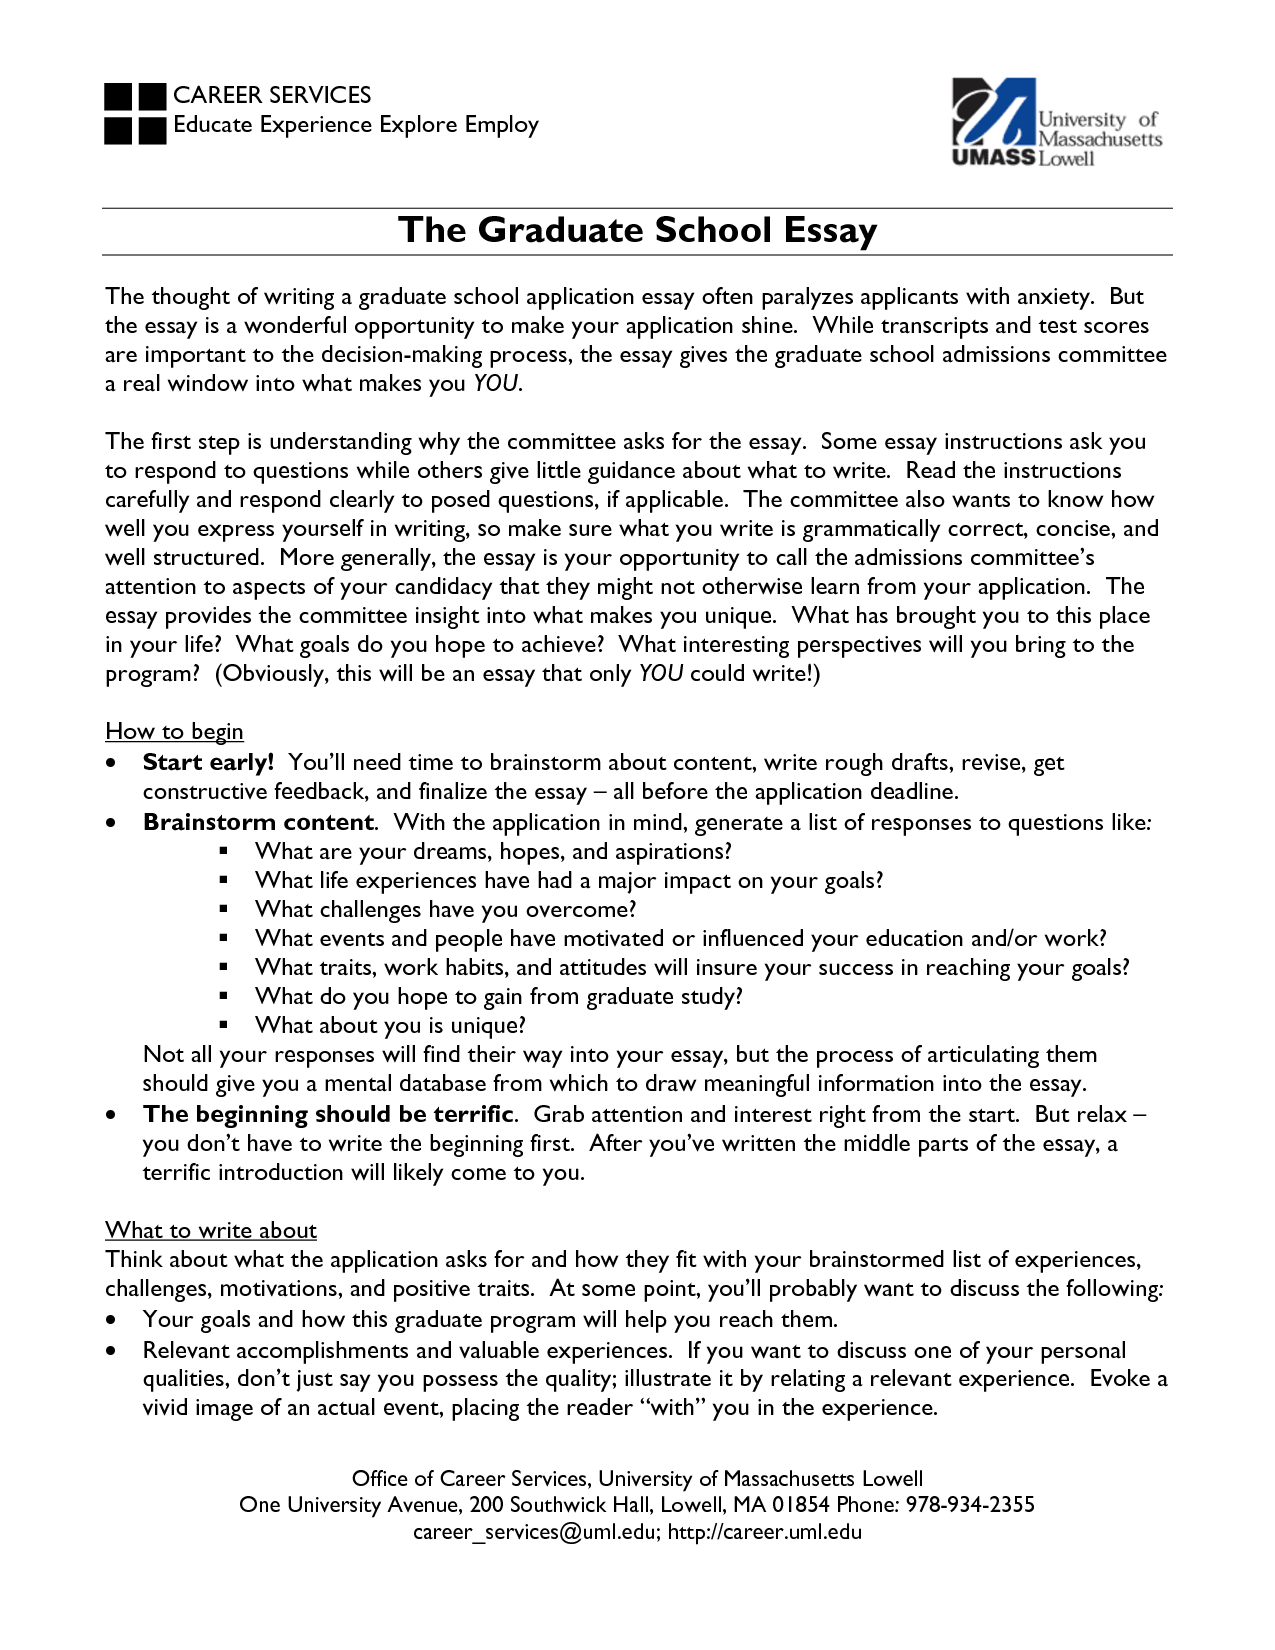 sfsu graduate studies thesis Guidelines for the formatting and submitting of master's theses and written  creative works san francisco state university division of graduate studies.